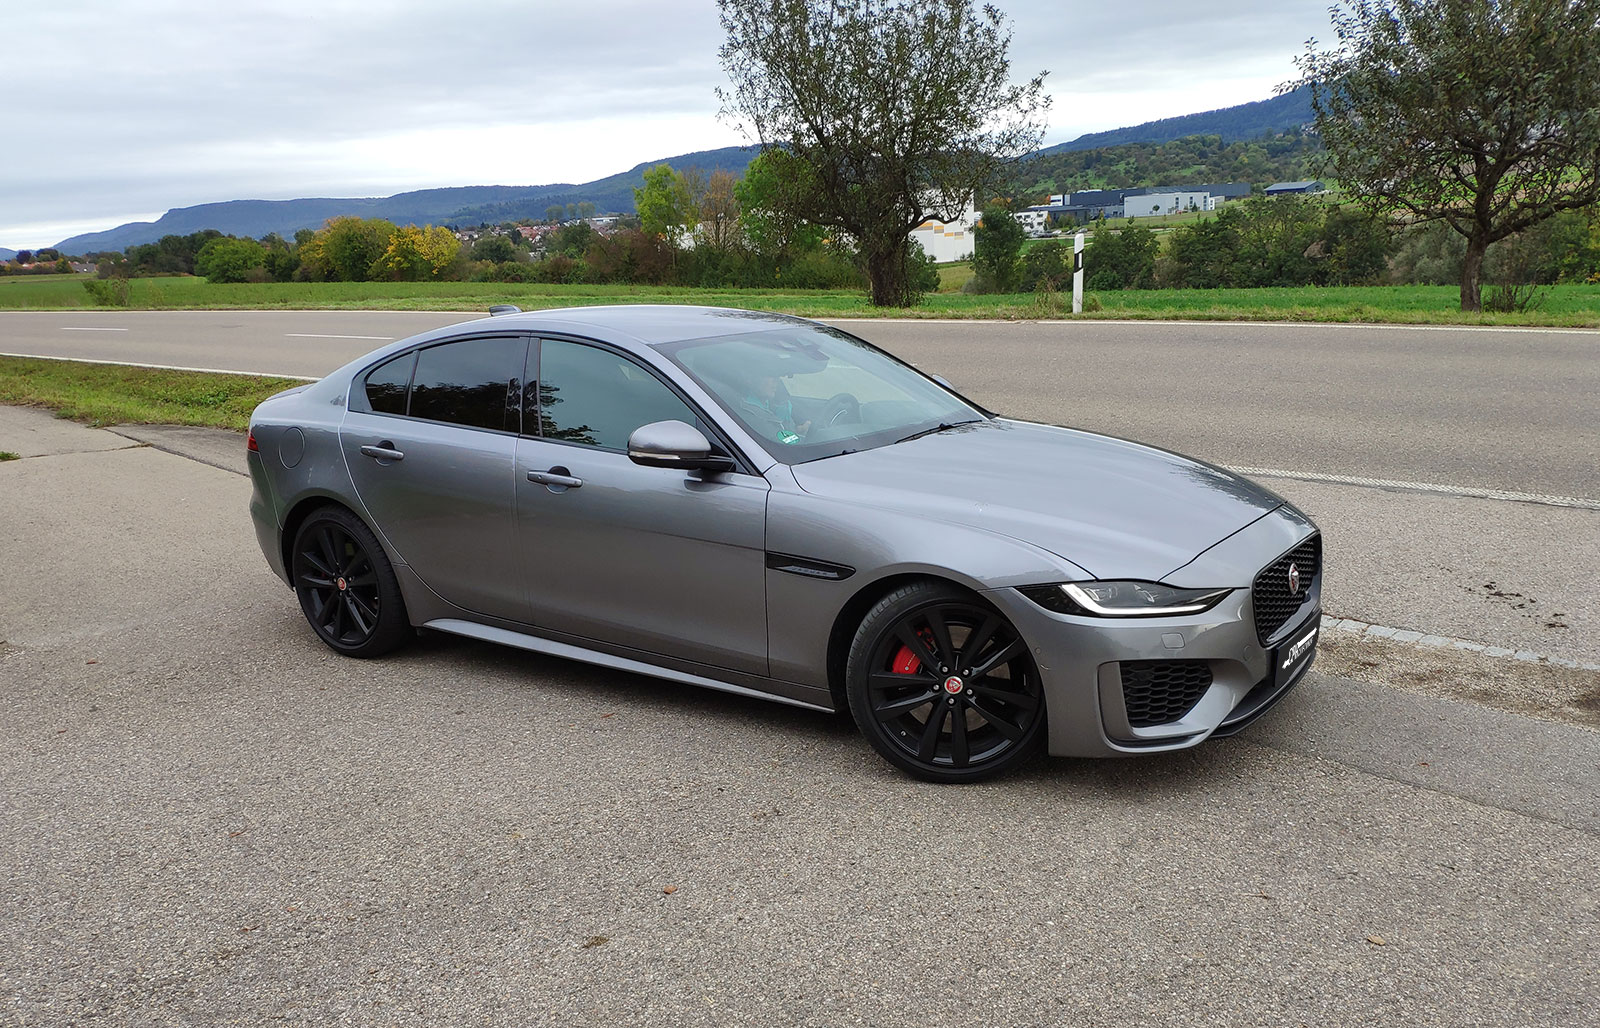 The new Jaguar XE 25t in the test